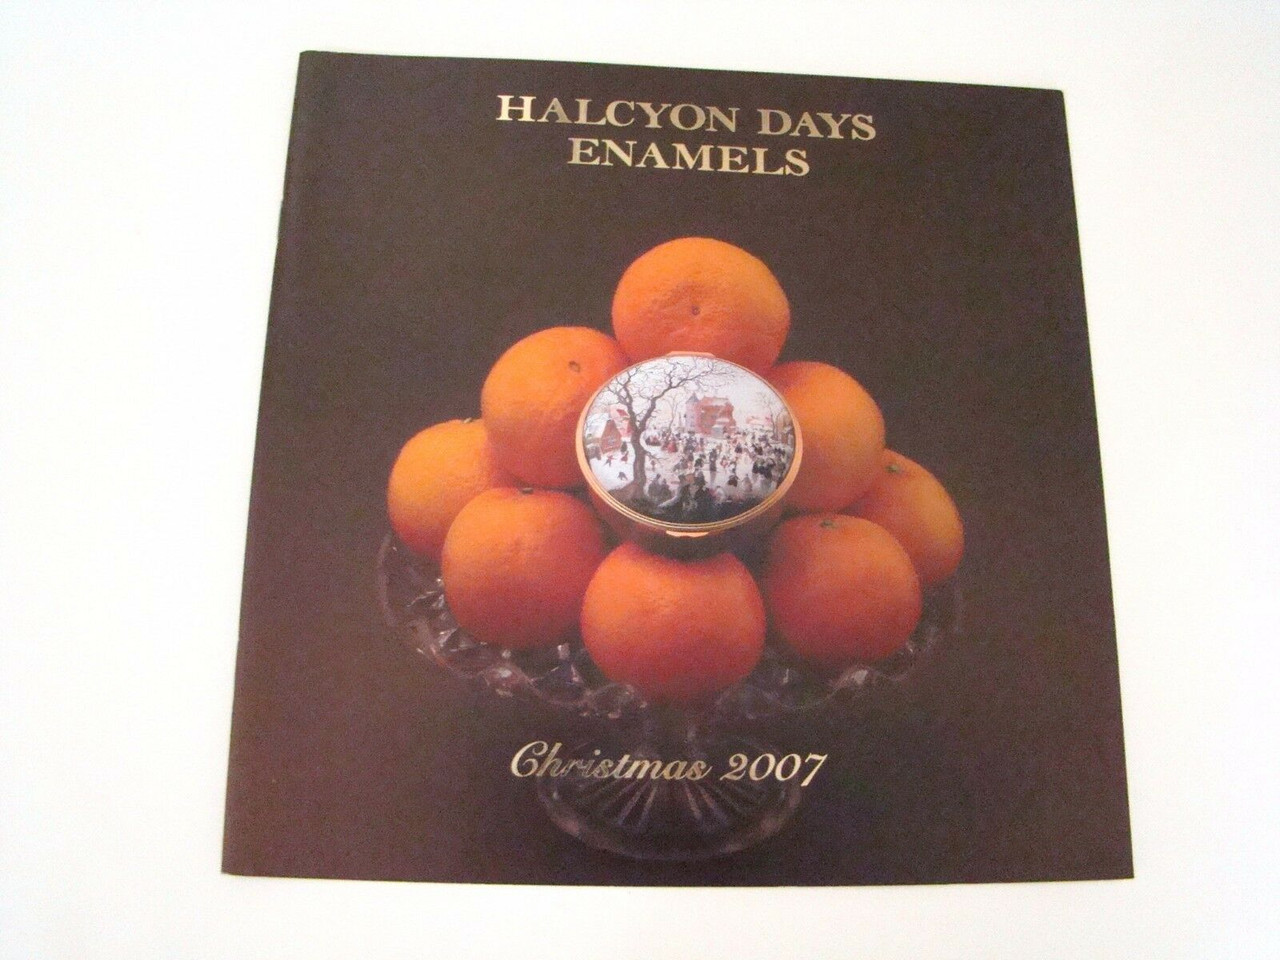 Halcyon Days Christmas 2007 Catalog For Reference Only